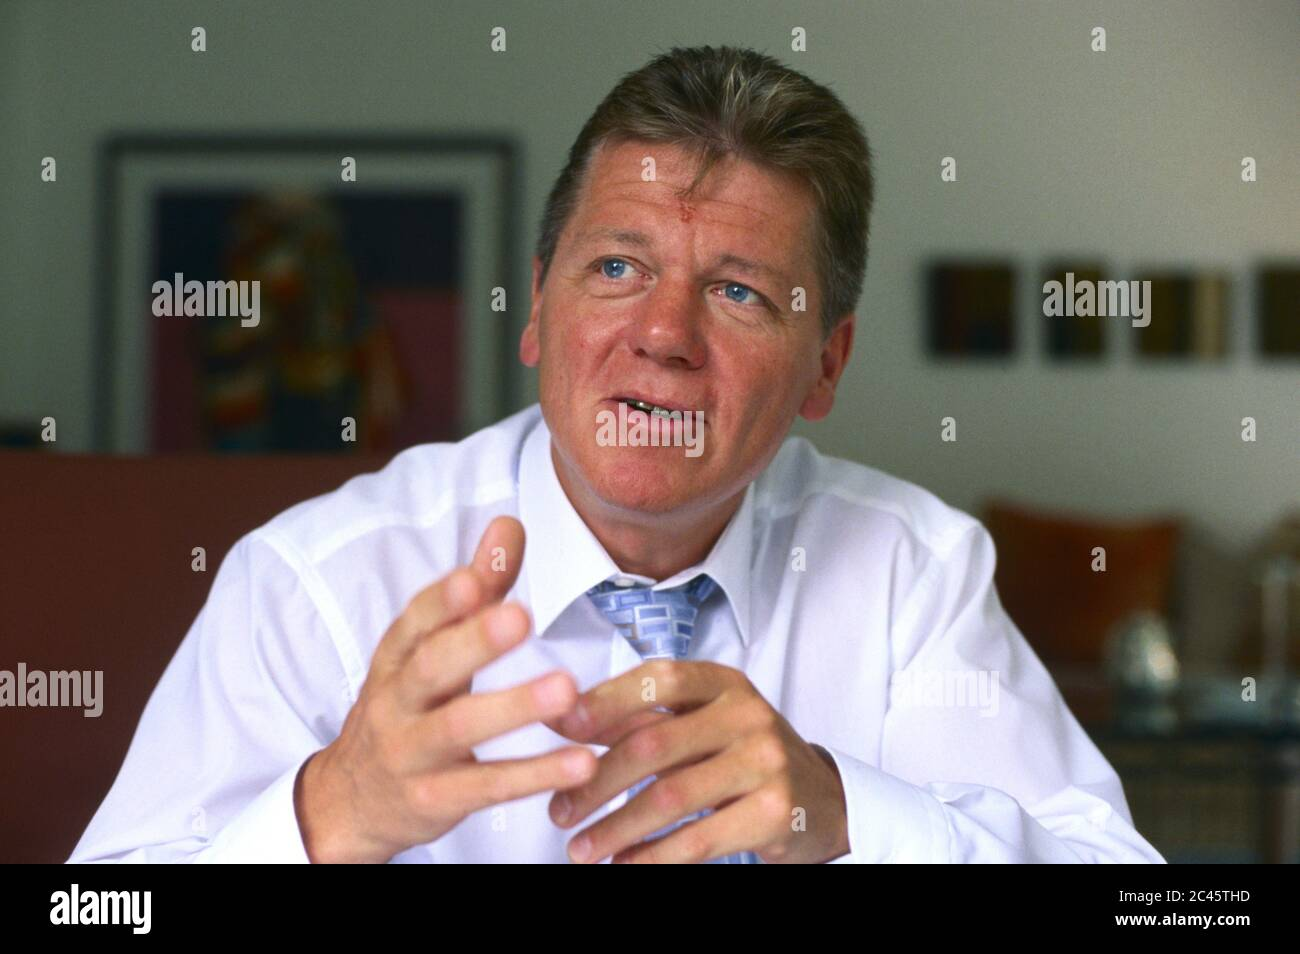 Dr. Reinhard K. Sprenger - Personal Trainer and Author Stock Photo